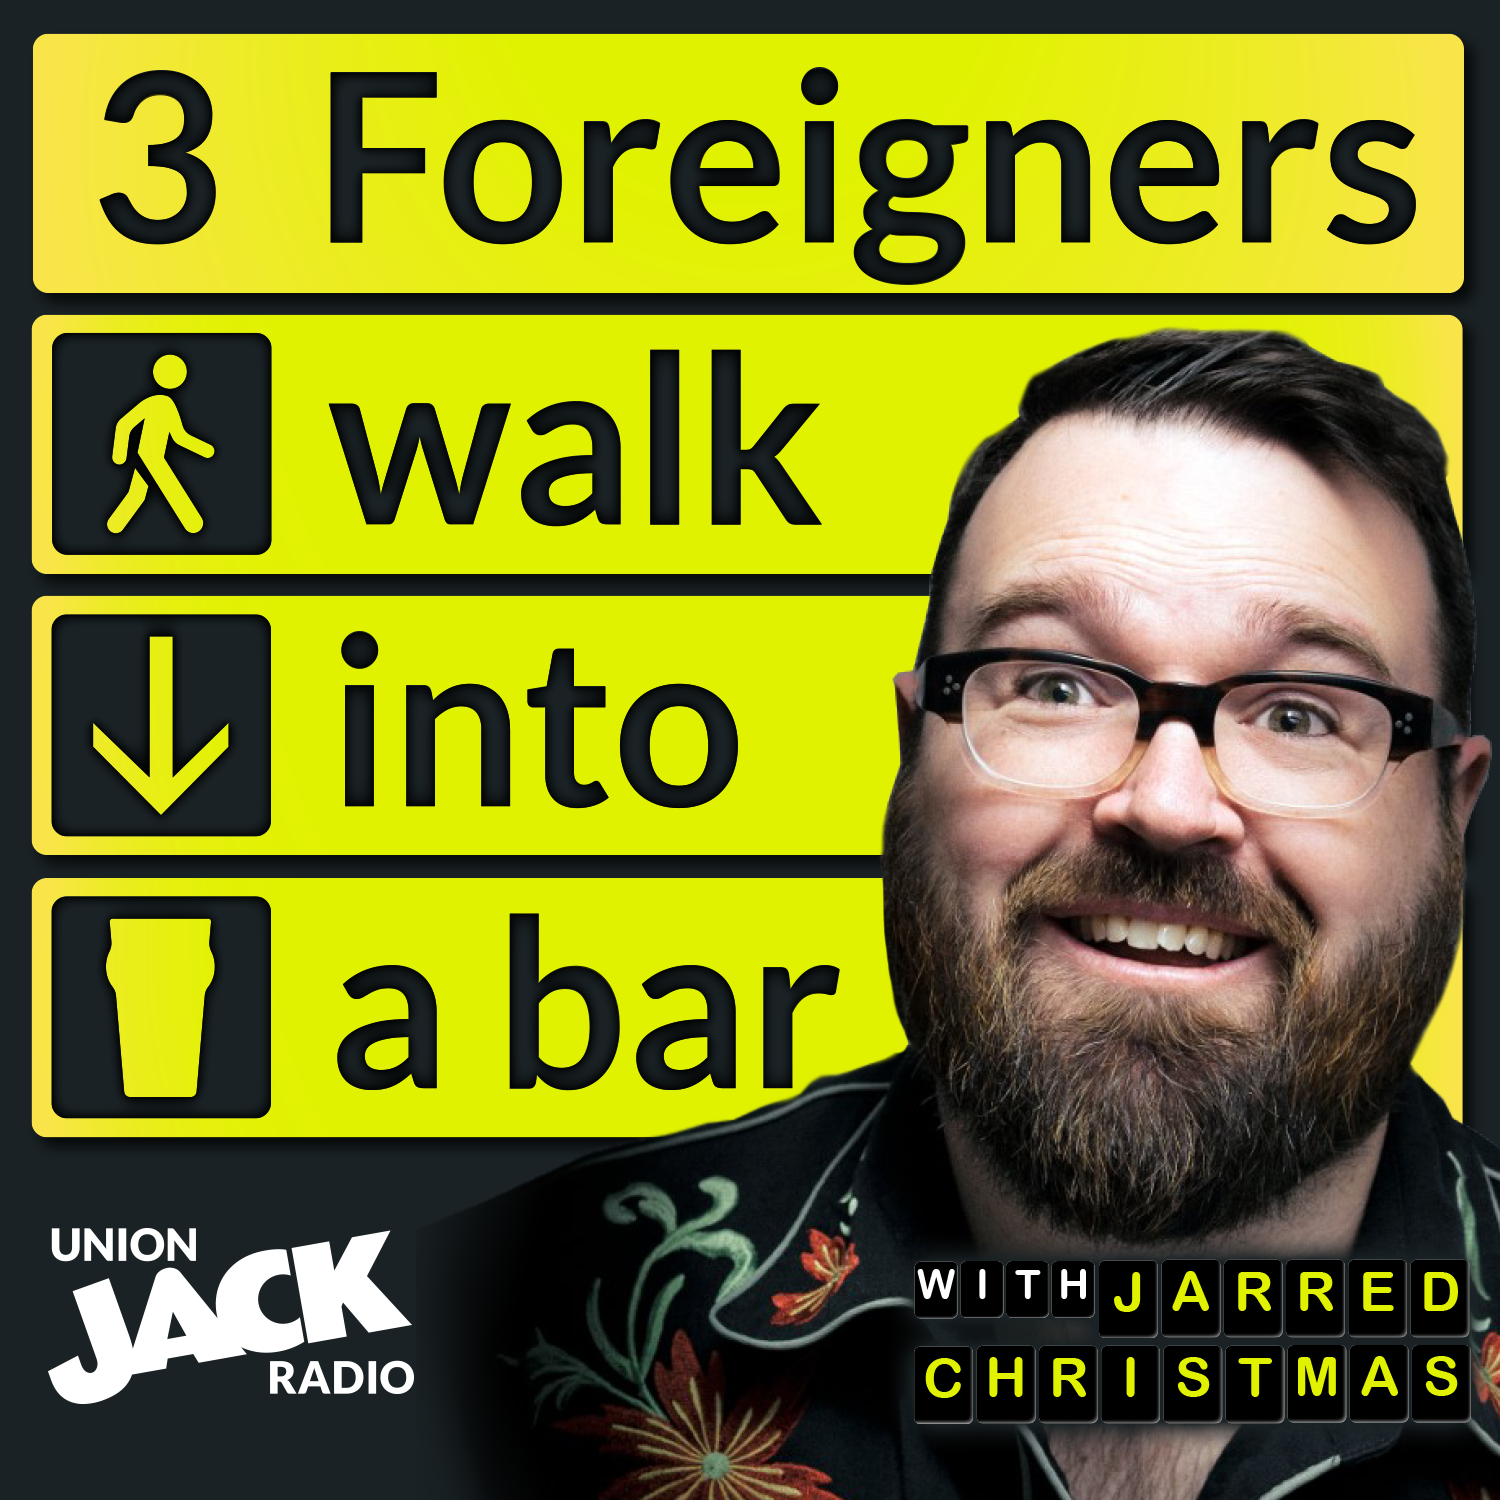 3 Foreigners Walk Into A Bar